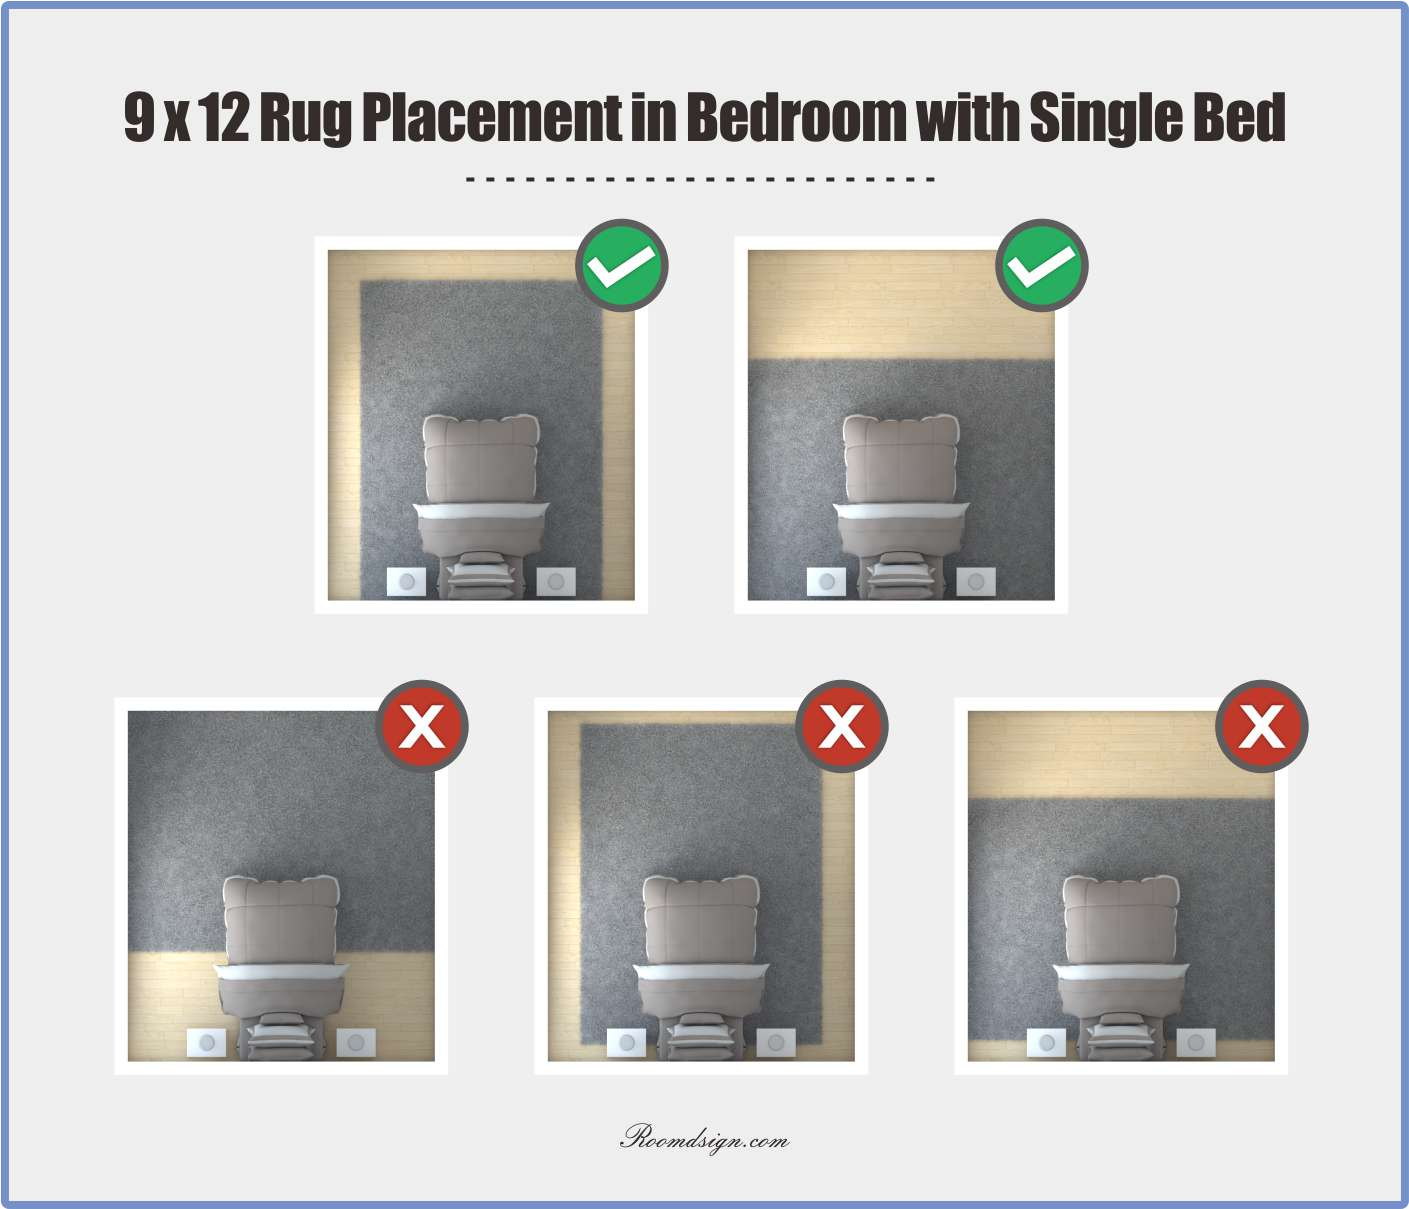 How To Place A Rug In A Bedroom Correctly Roomdsign Com